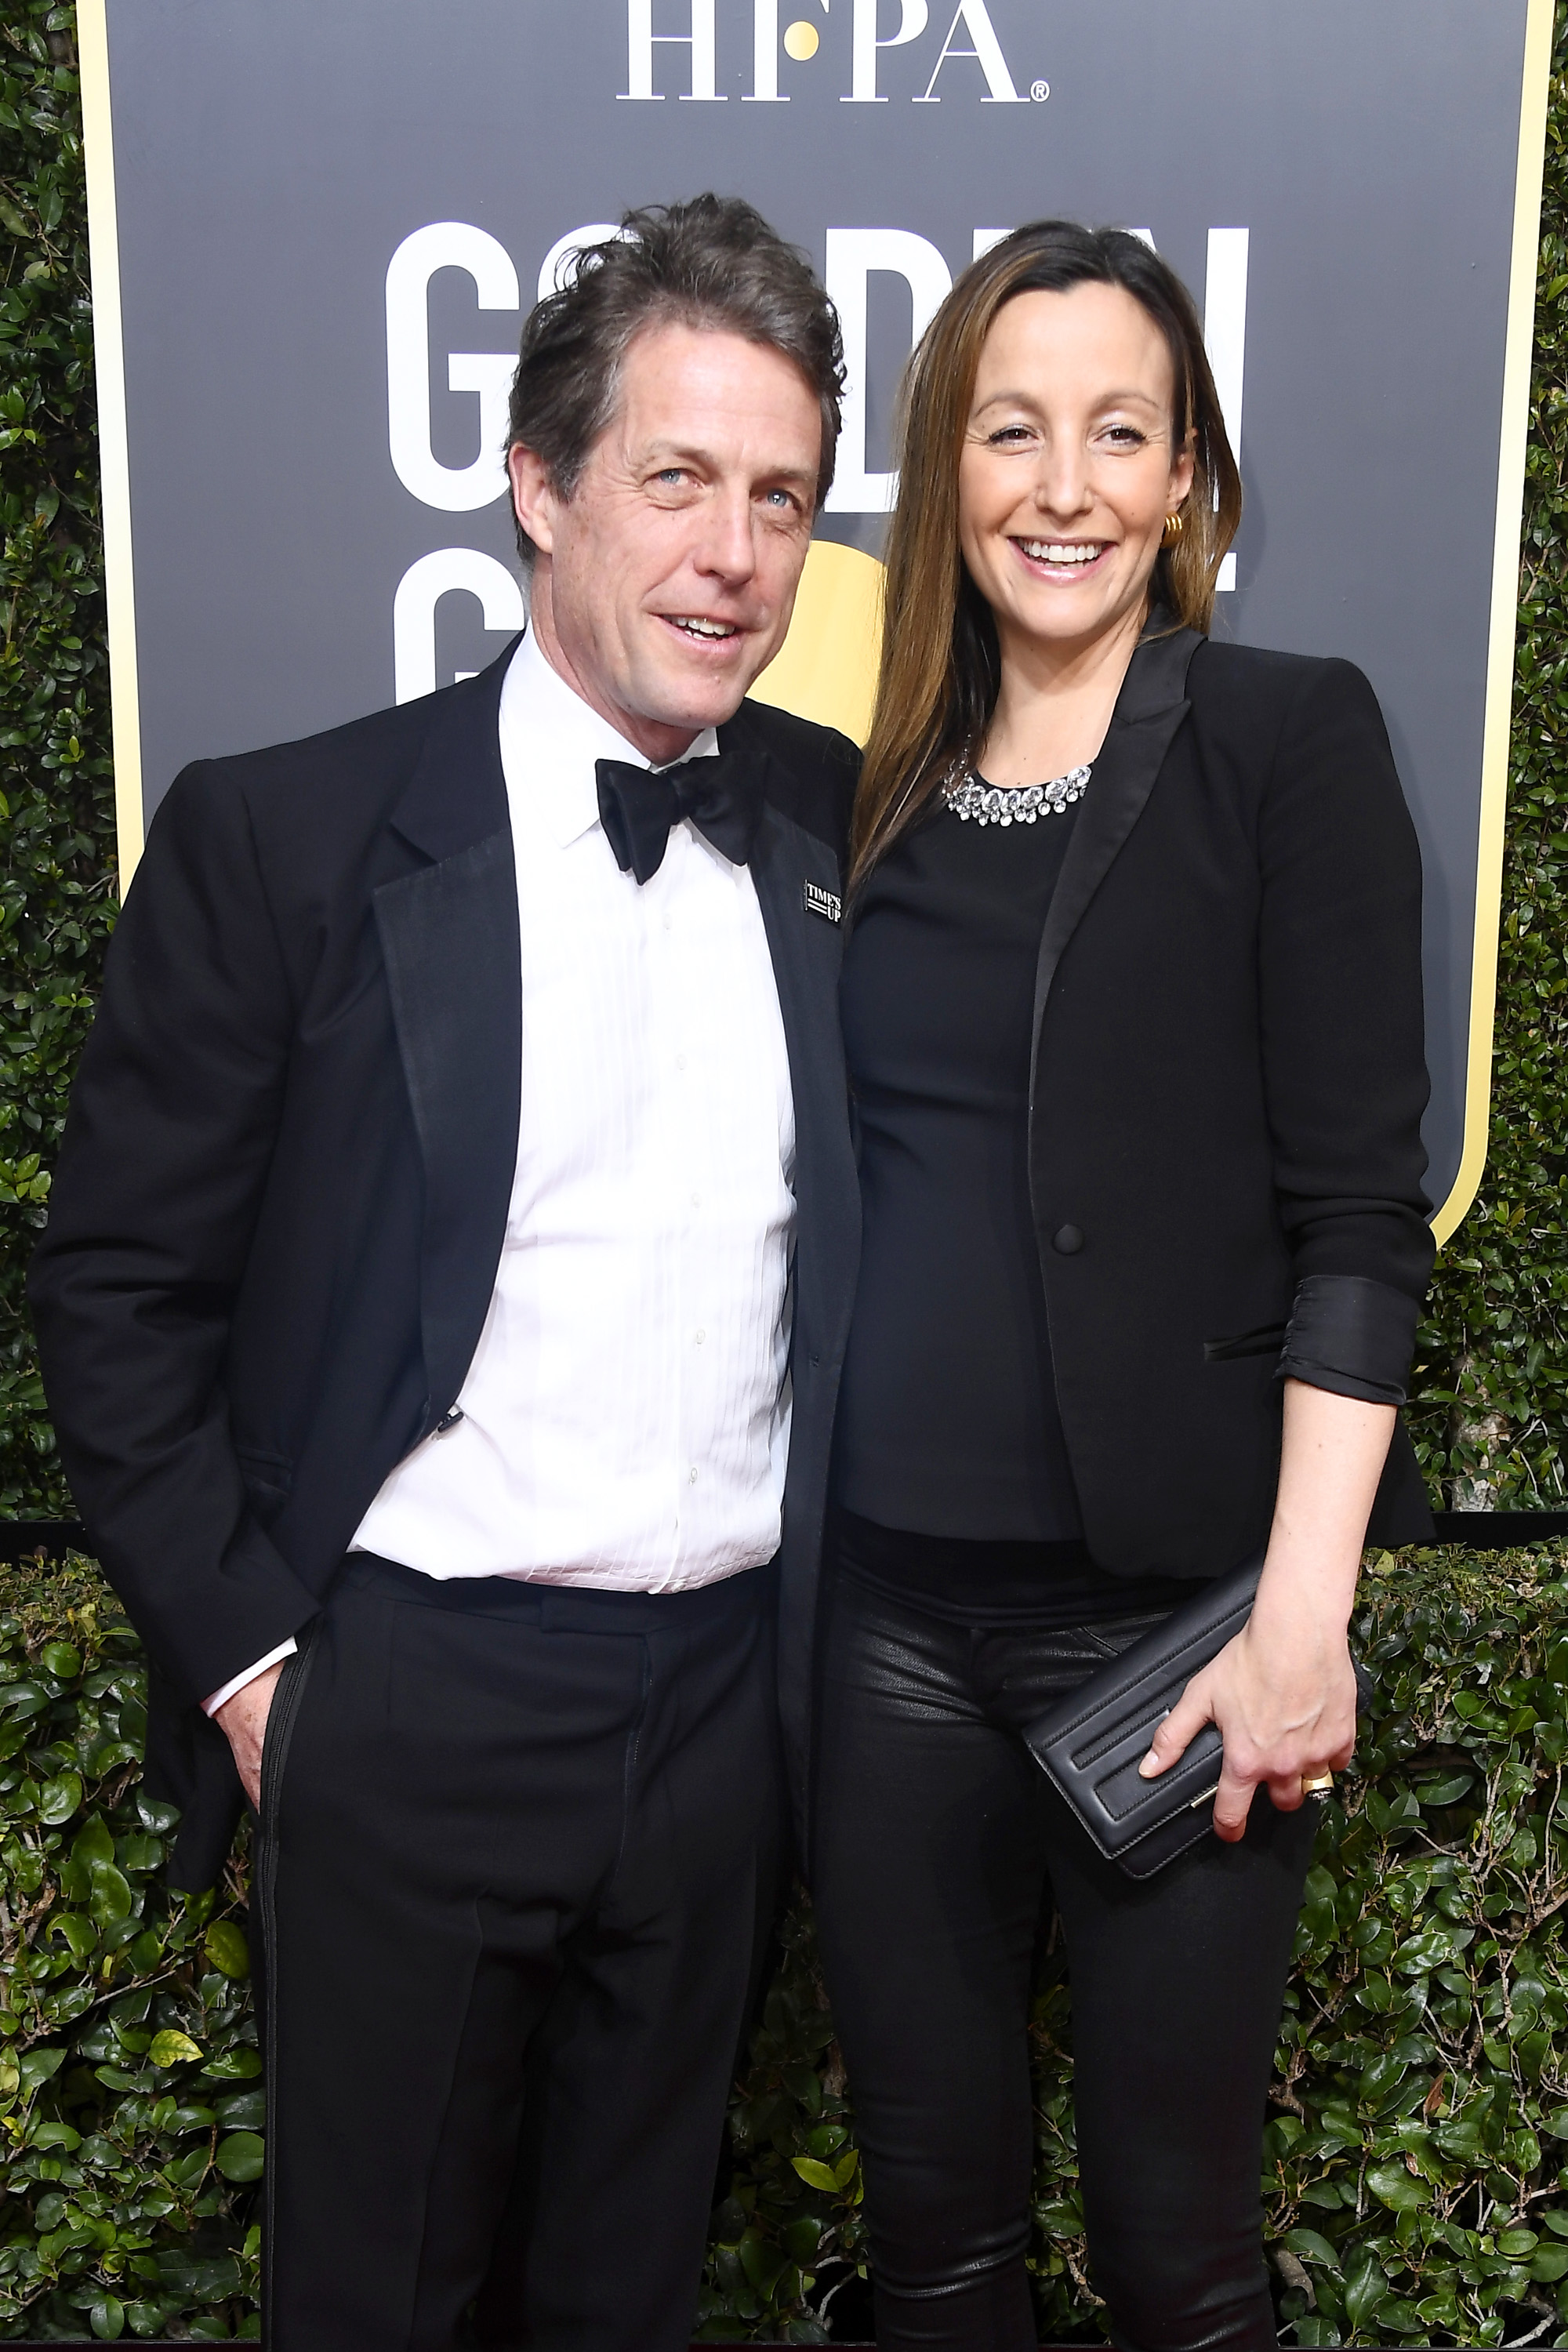 BEVERLY HILLS, CA - JANUARY 07: Actor Hugh Grant and Anna Eberstein attend The 75th Annual Golden Globe Awards at The Beverly Hilton Hotel on January 7, 2018 in Beverly Hills, California. (Photo by Frazer Harrison/Getty Images)